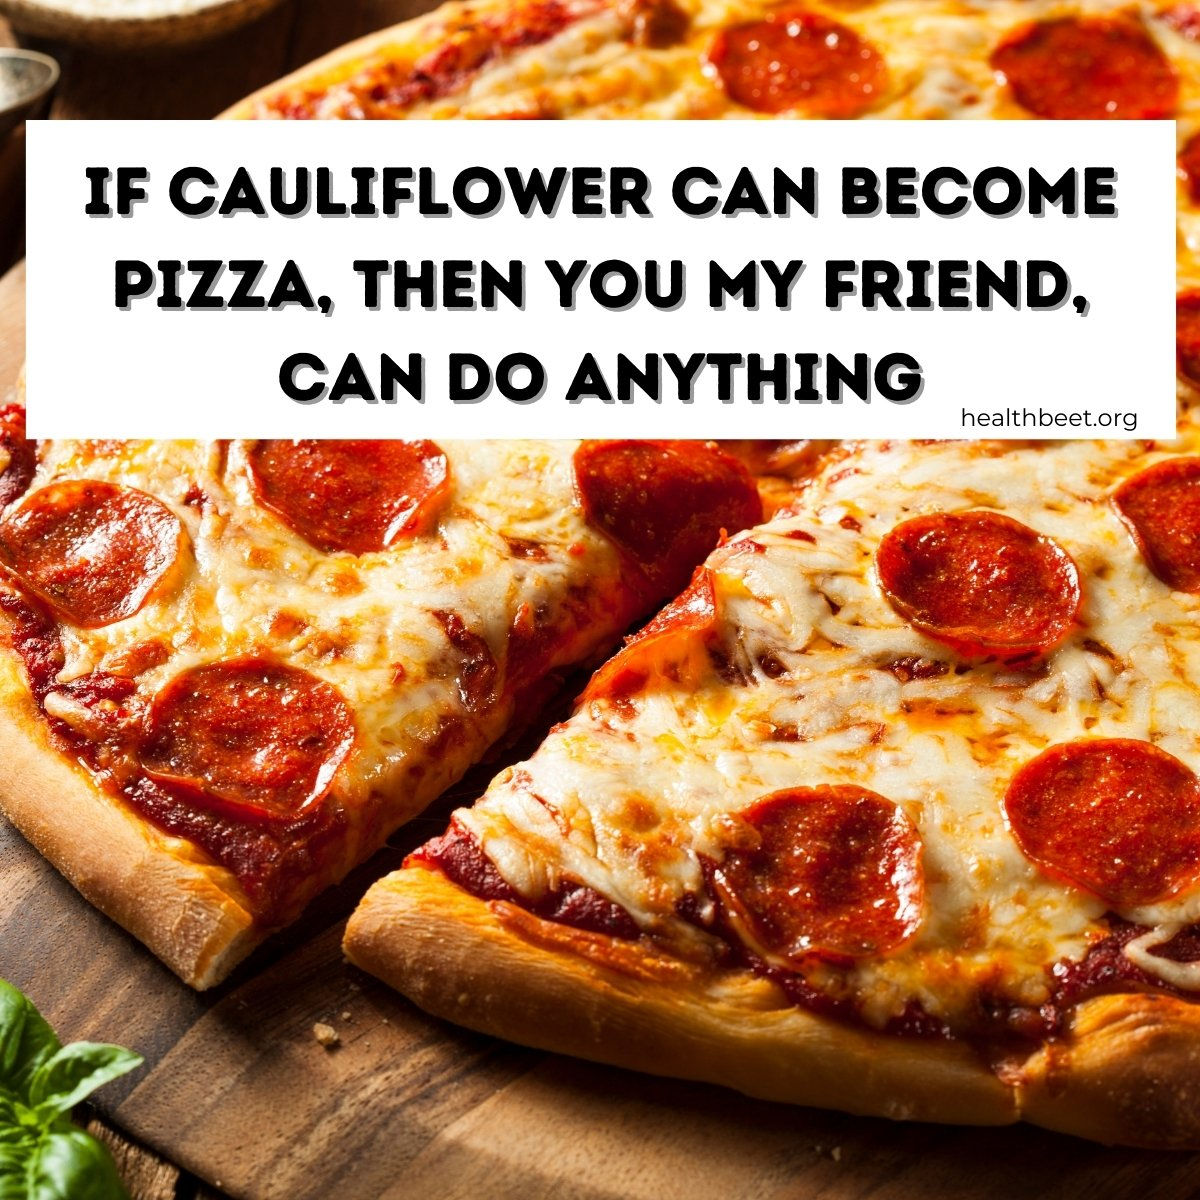 if cauliflower can become pizza funny meme